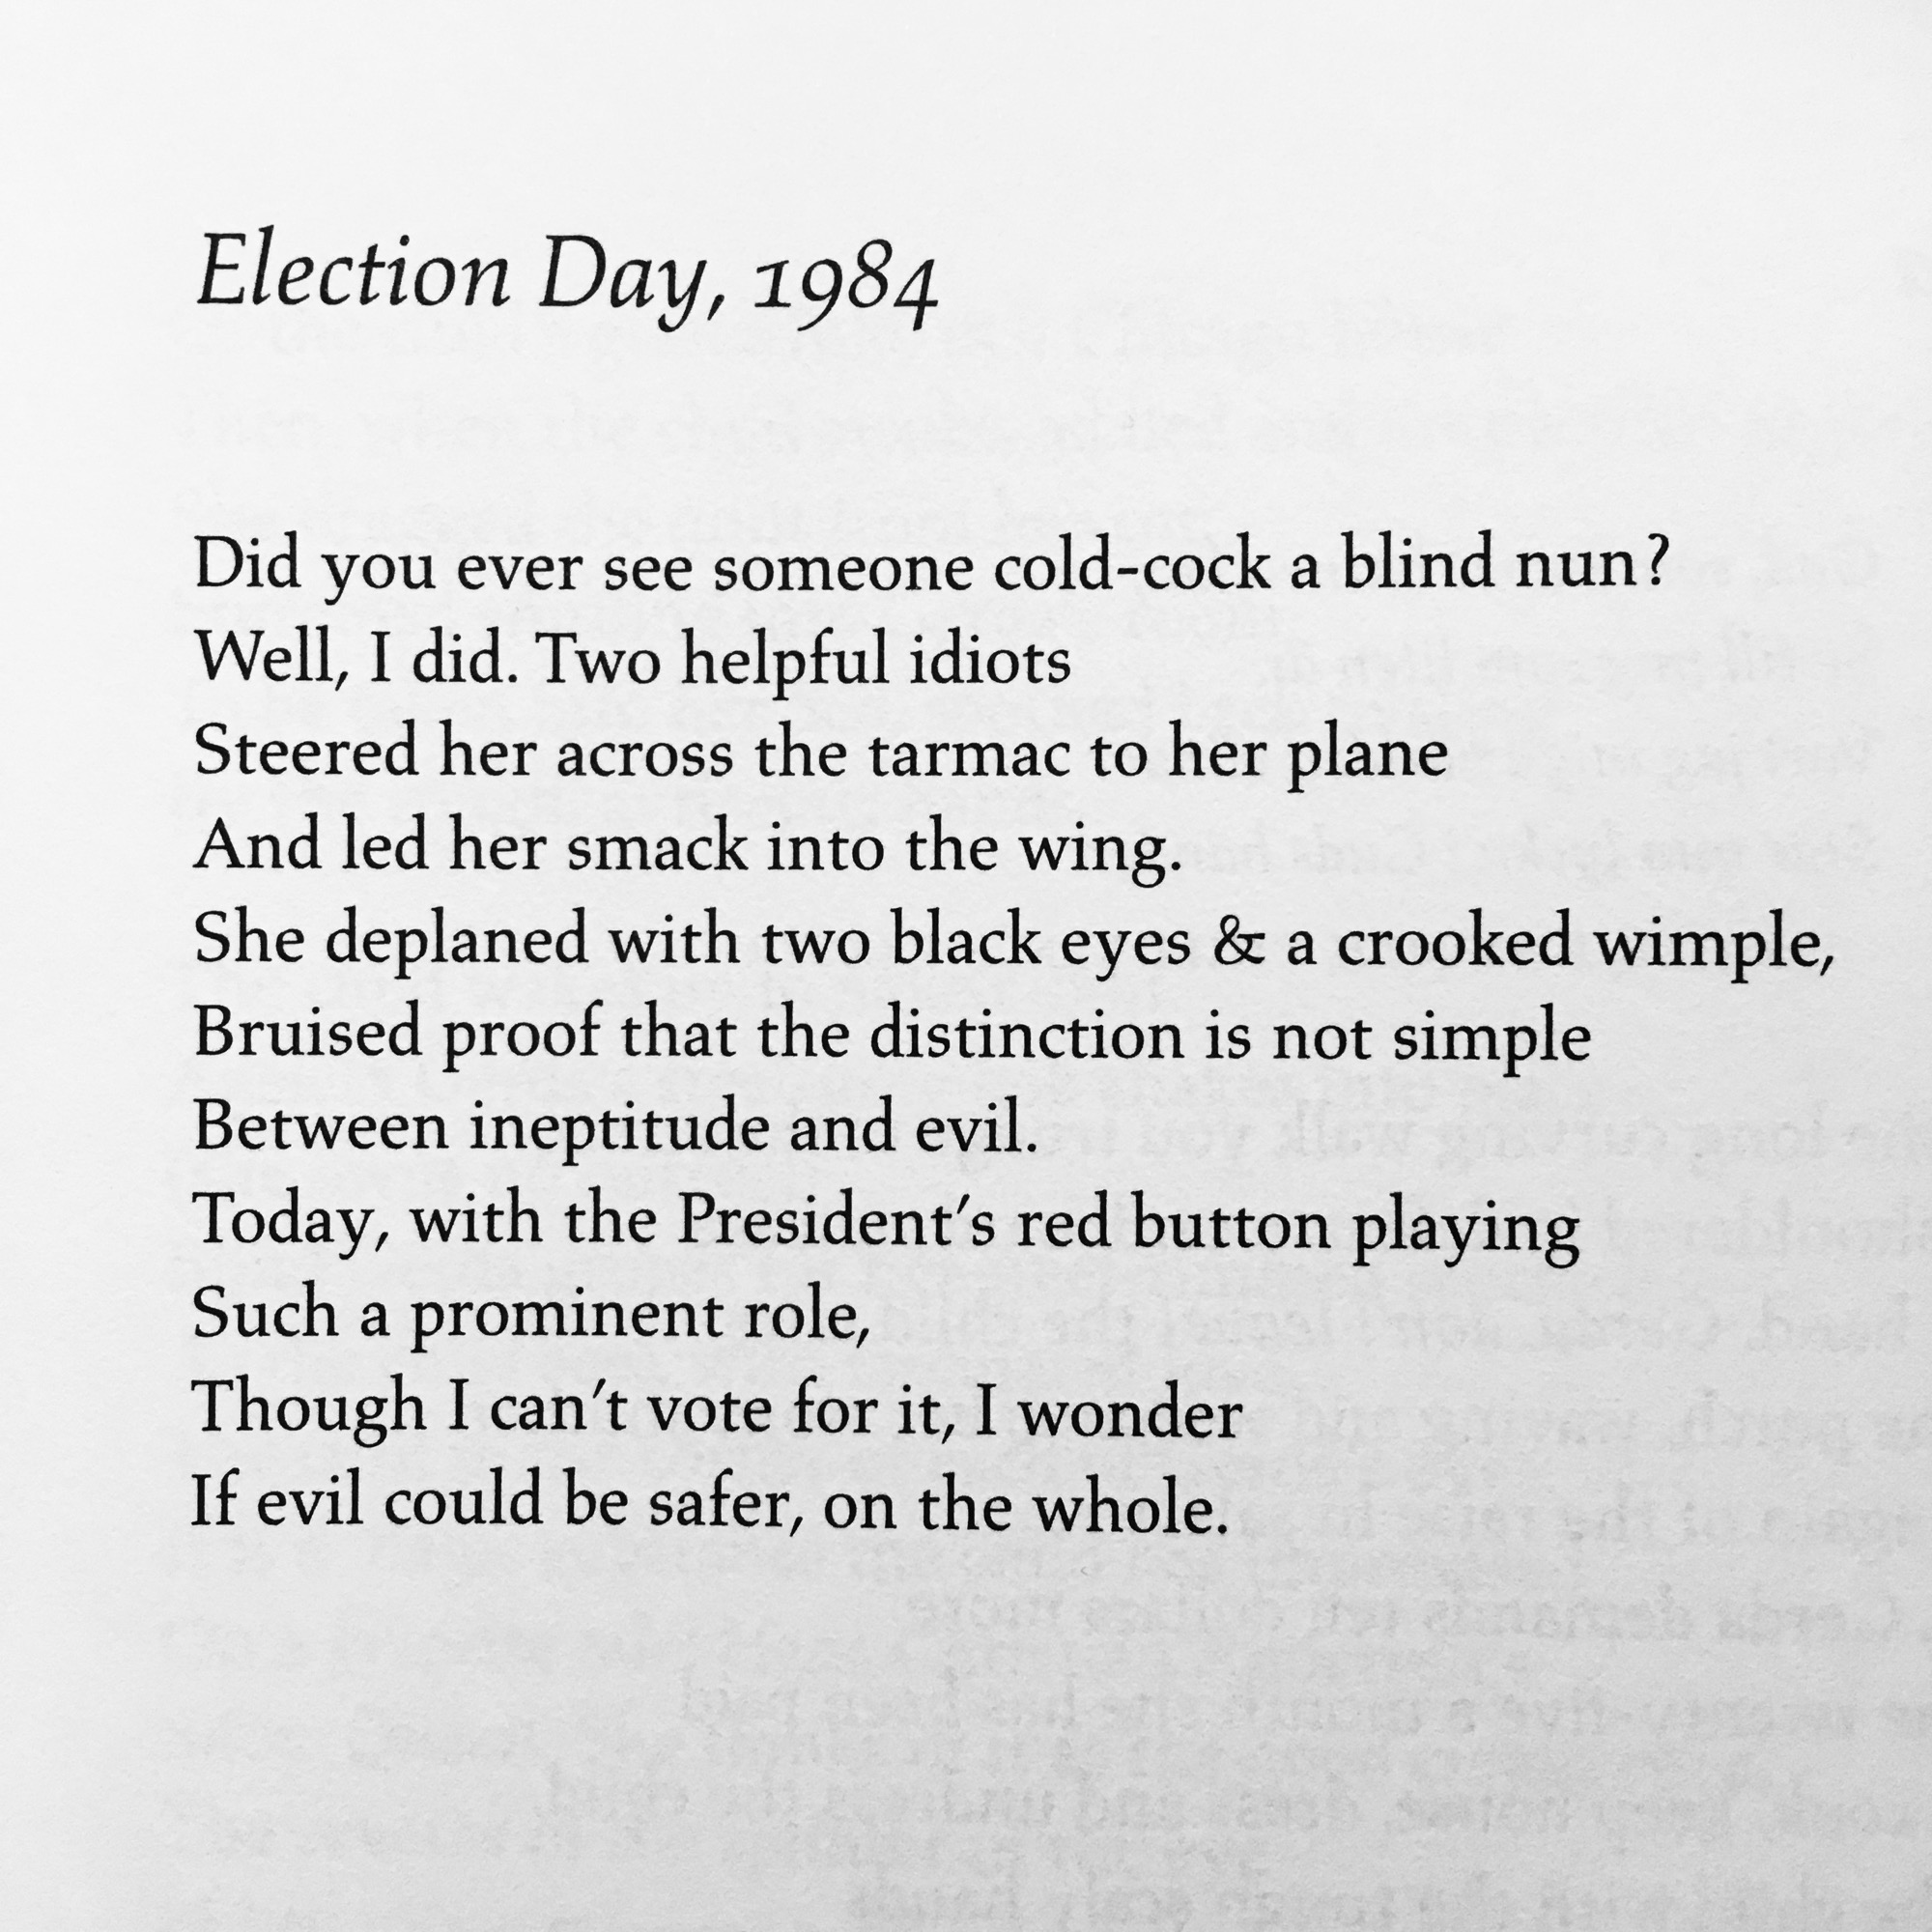 election day 1984 by carolyn kizer